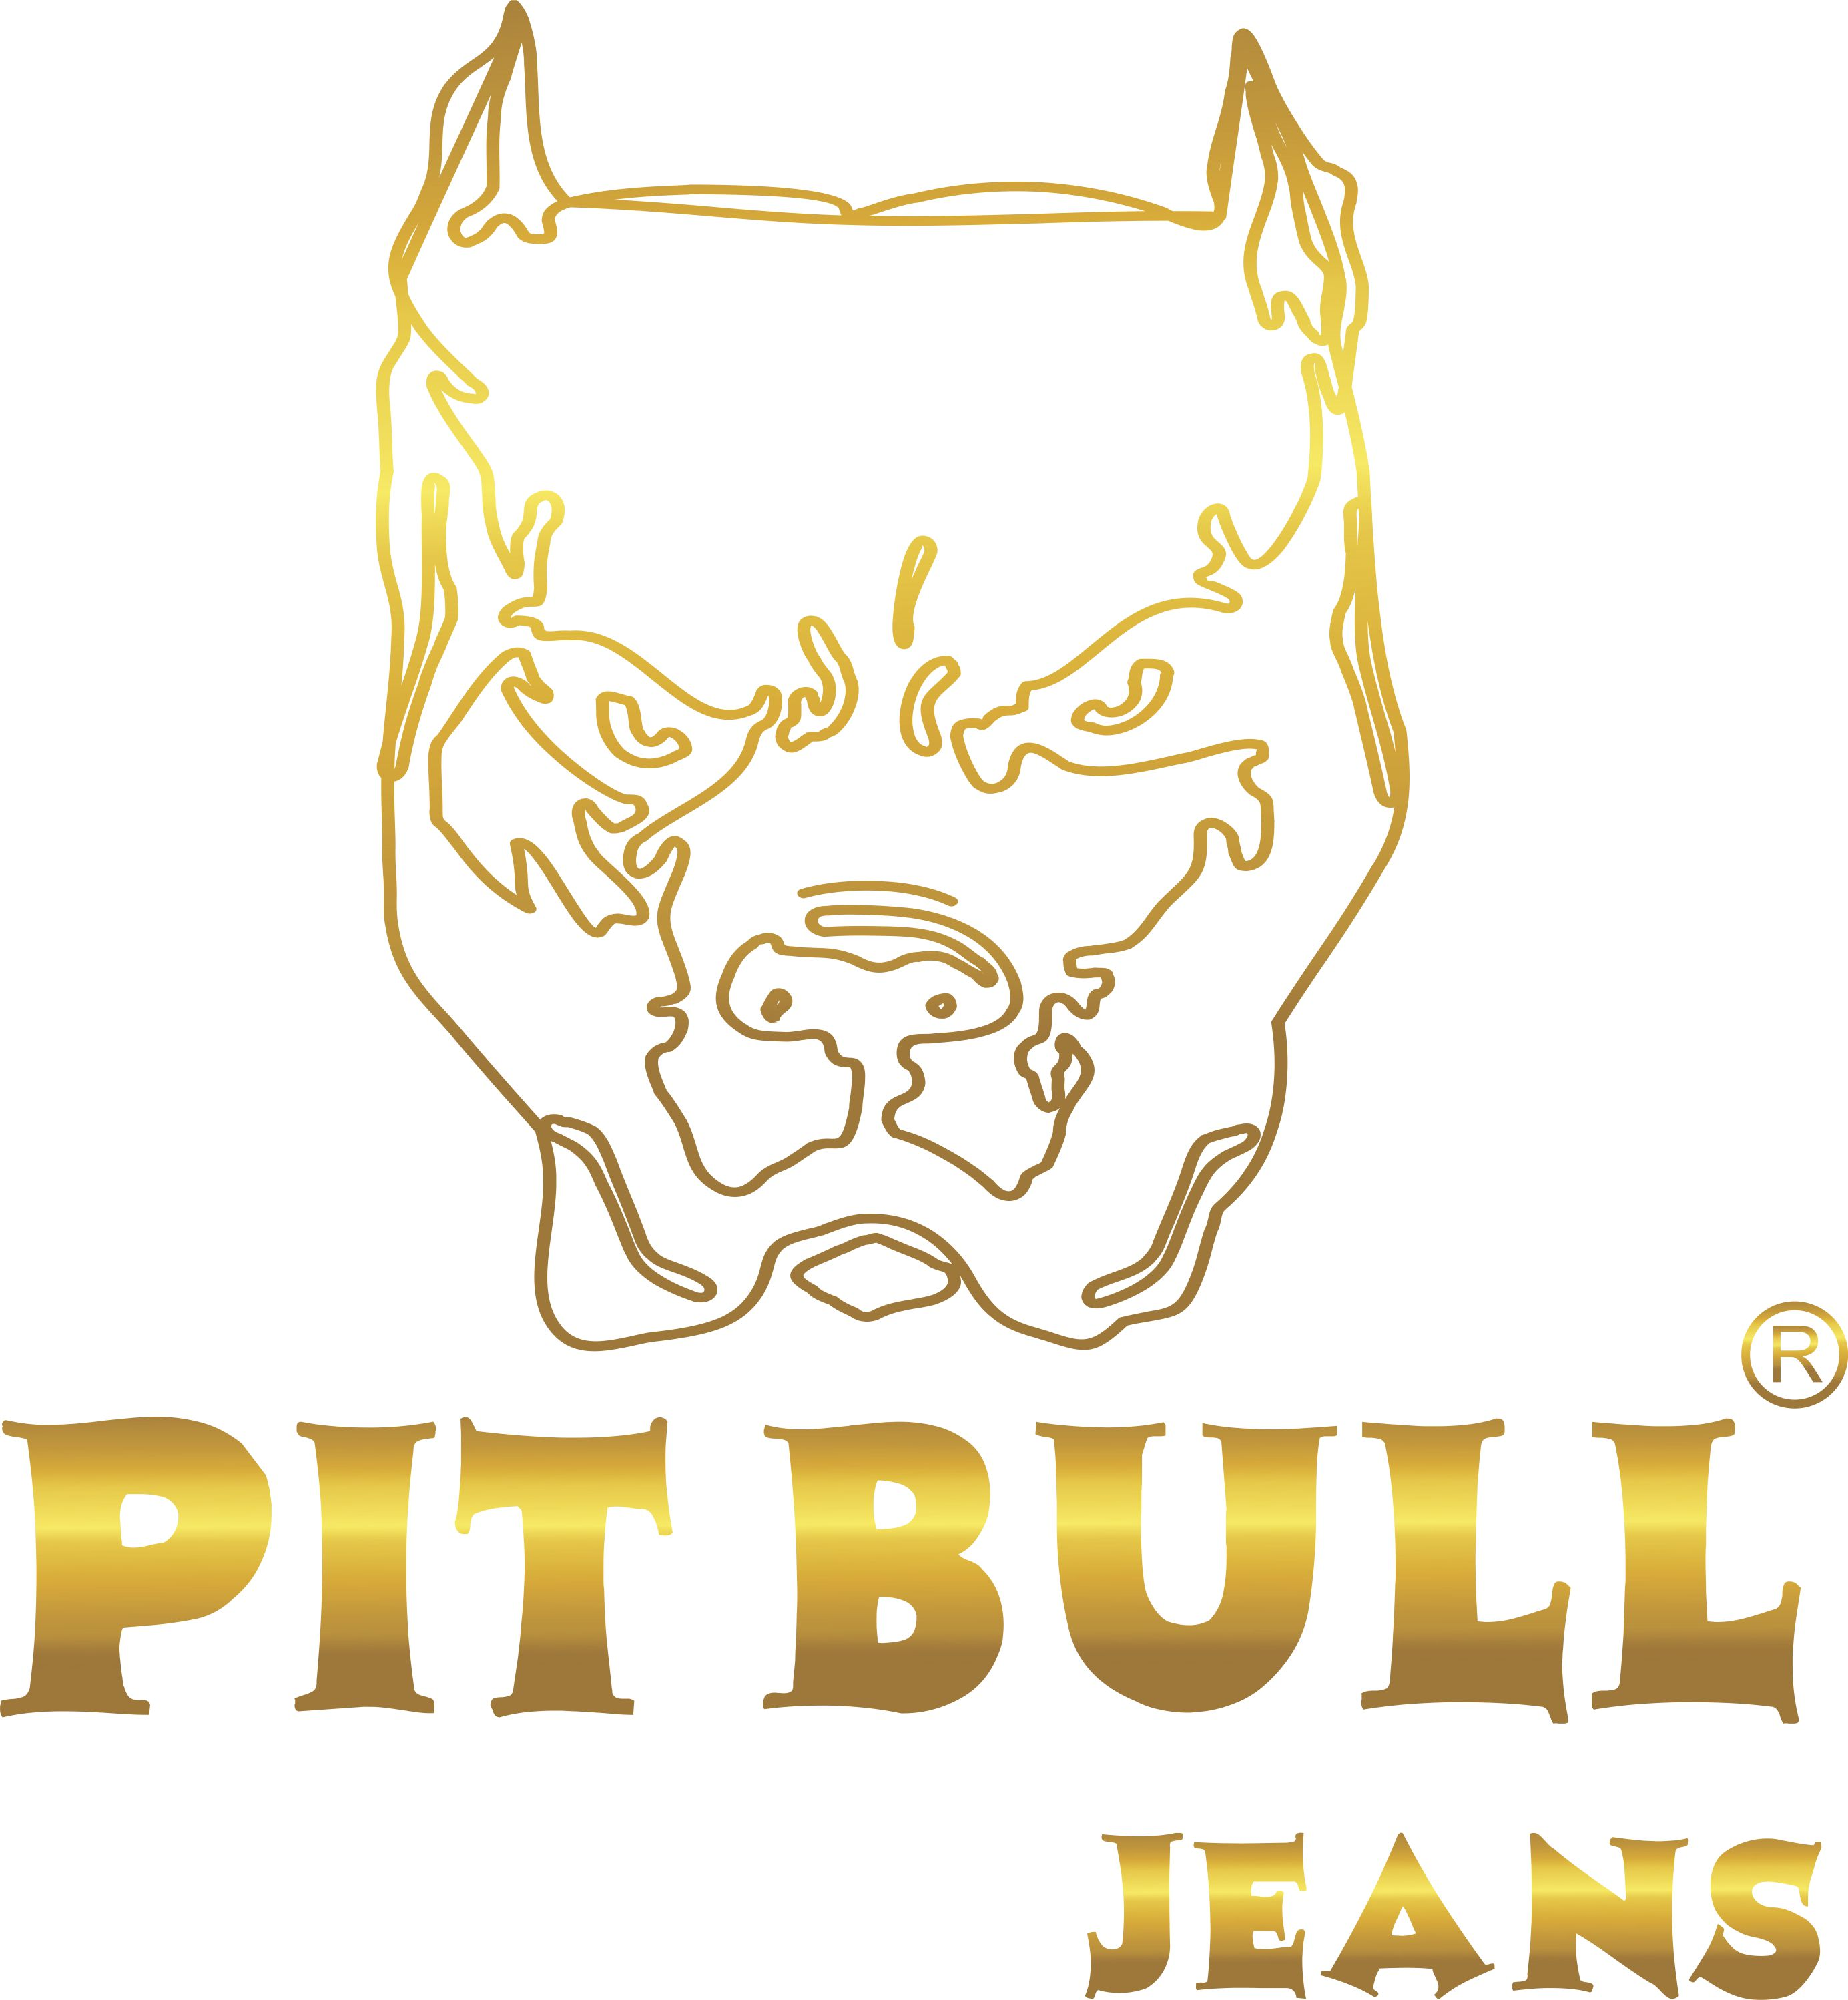 Pit Bull Jeans